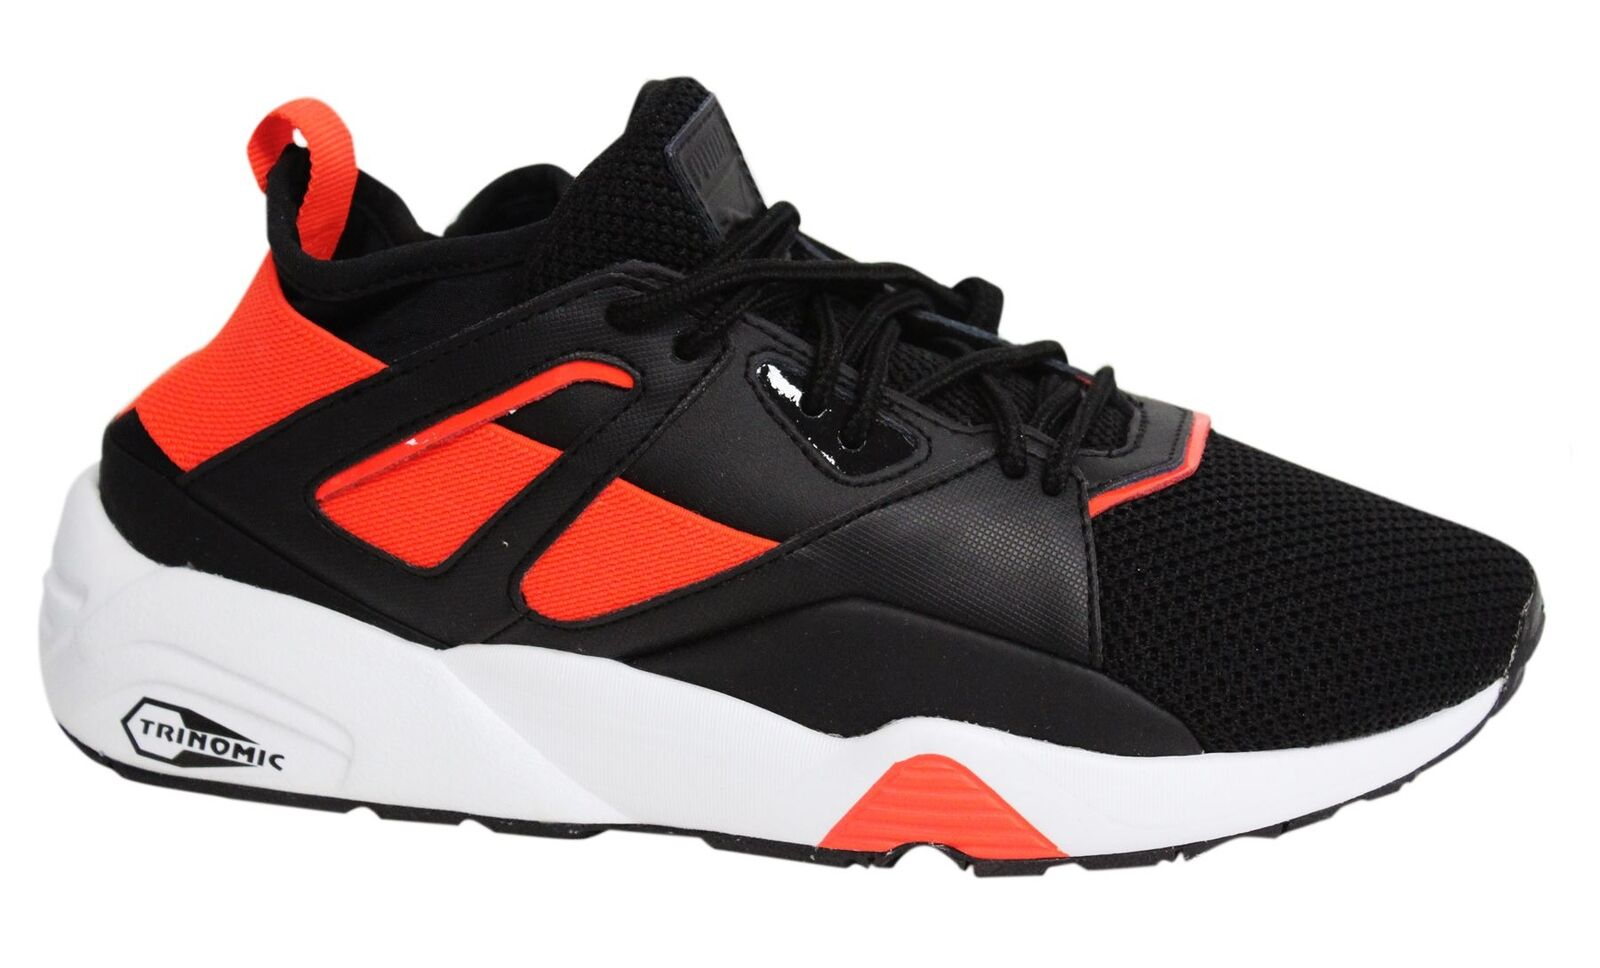 Puma Tech Blaze of Glory Sock Tech Puma Lace Up Black Orange Mens Trainers 362037 02 M8 546de2